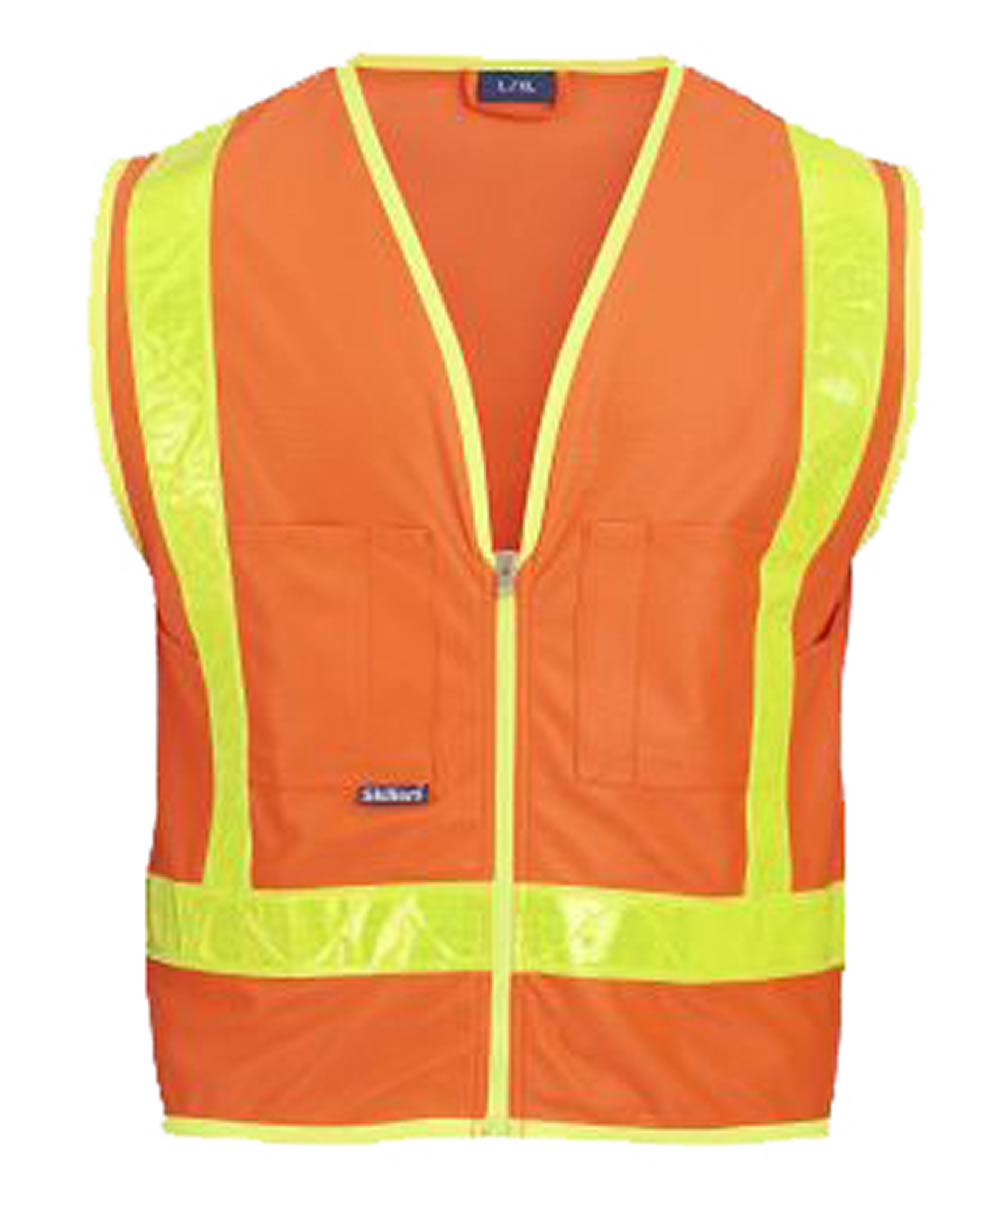 Skillers High Visibility Safety Vest – Orange Solid Vest